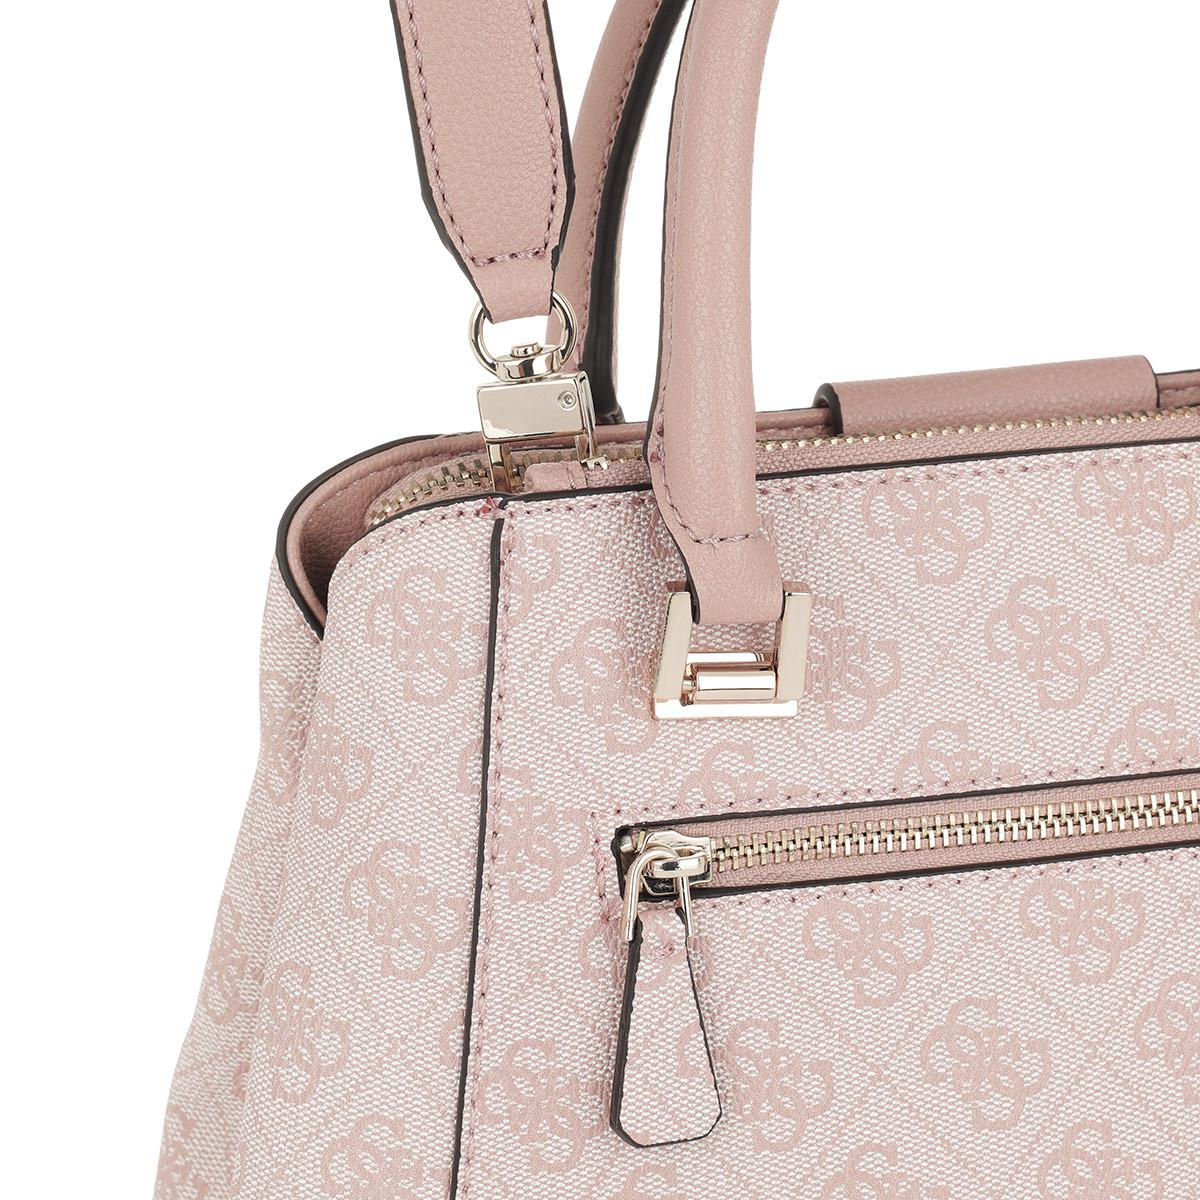 0250cca3cc Guess Logo Luxe Sml Society Satchel Bag Blush in Pink - Lyst